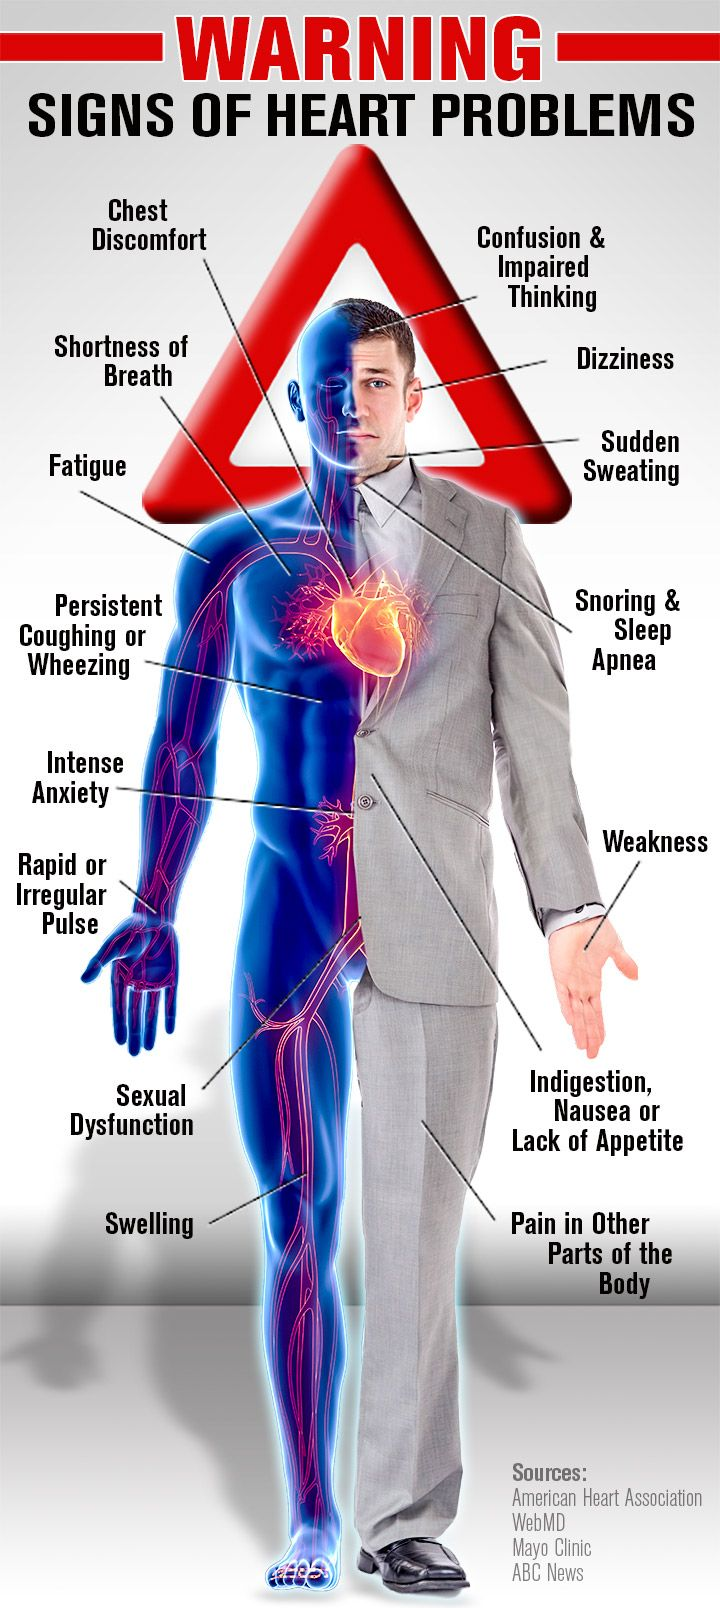 Signs of a heart disease that doctor may miss